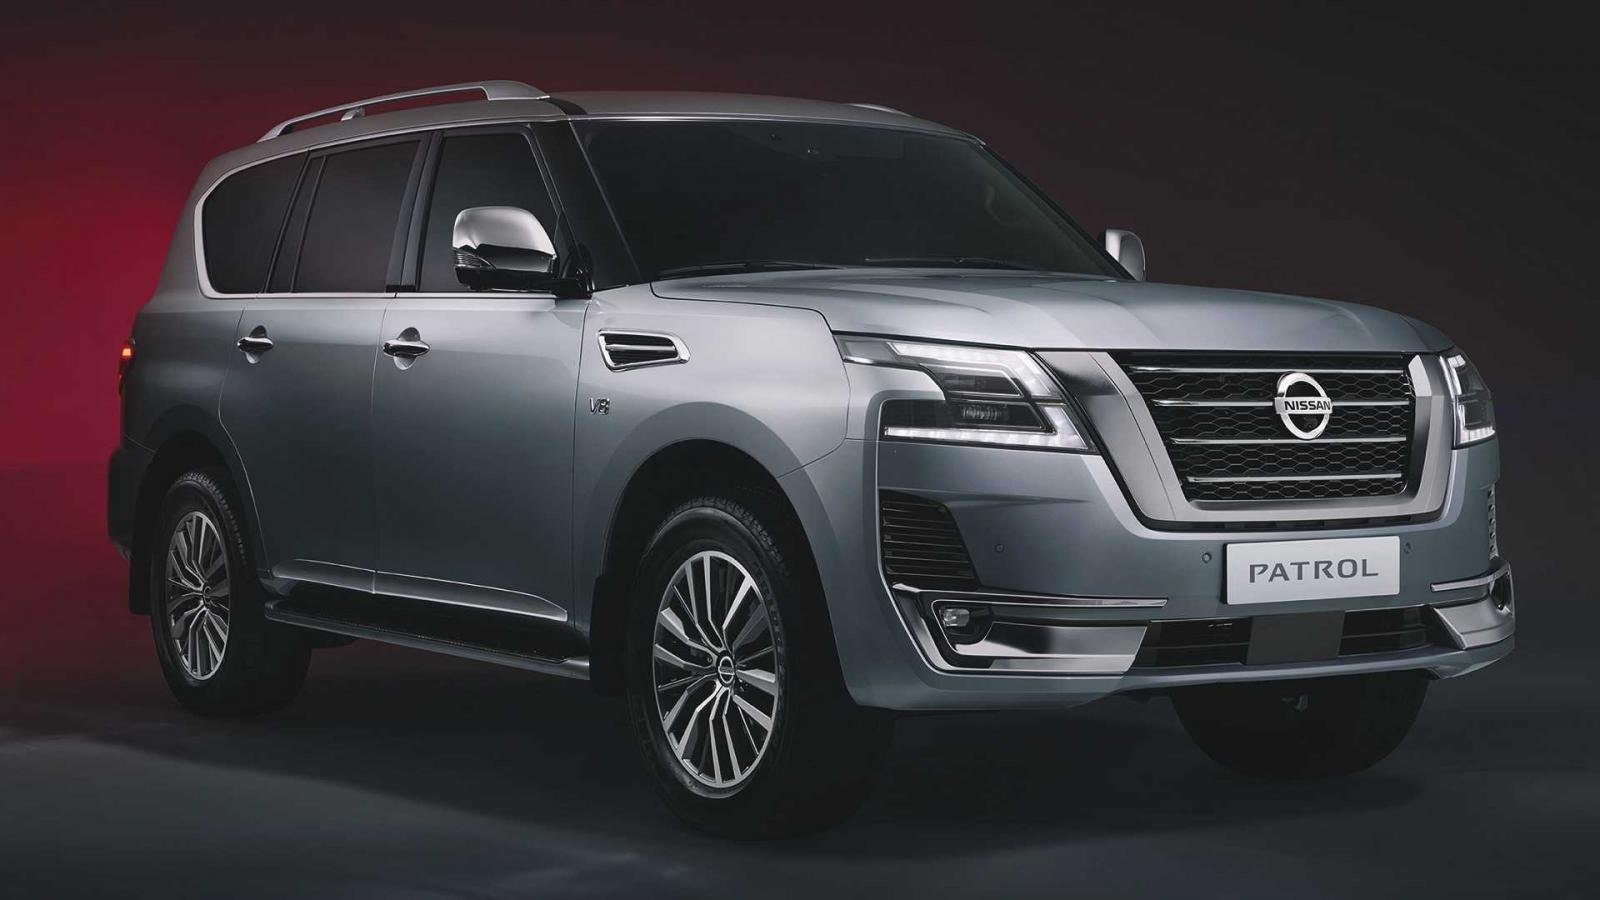 2021 Nissan Patrol front view